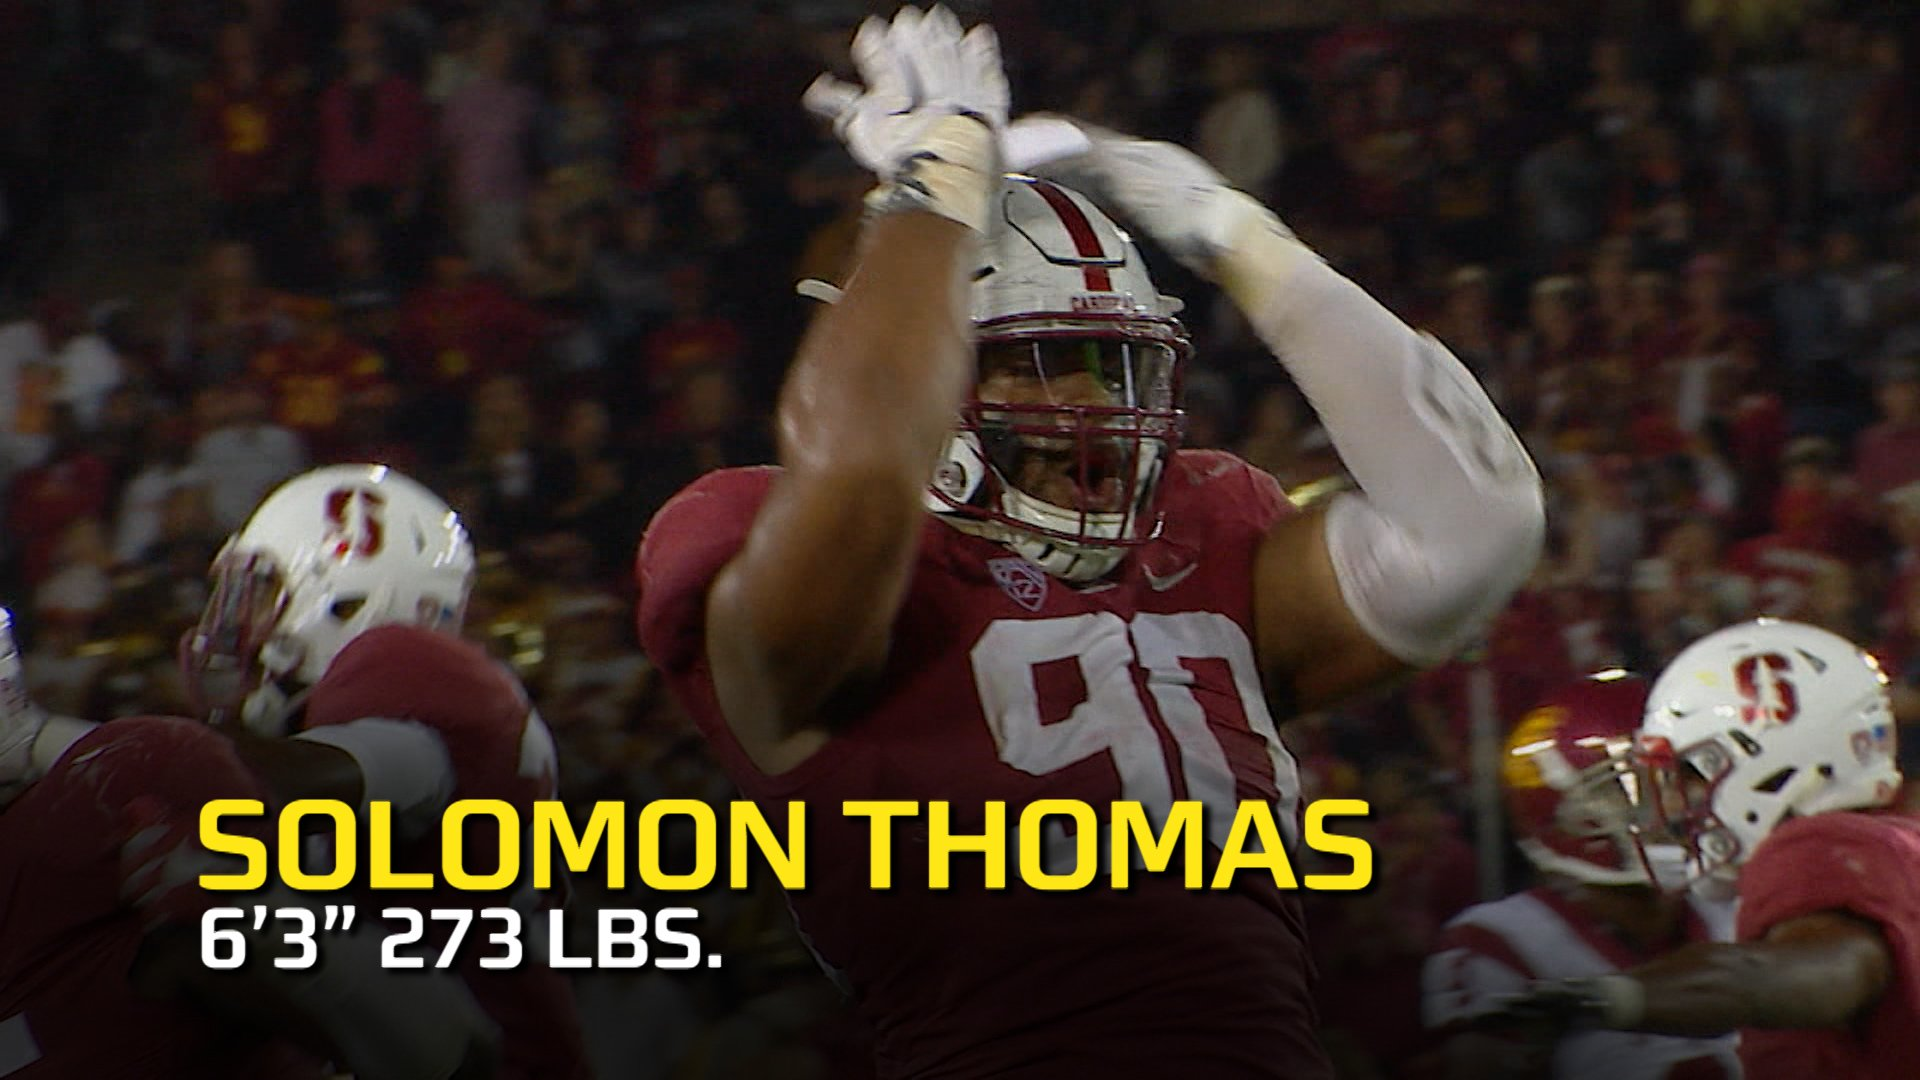 Turn the volume ⬆️ and enjoy the best highlights of @SollyThomas90 🔥  🎥 @Pac12Network https://t.co/T4yzcAE357